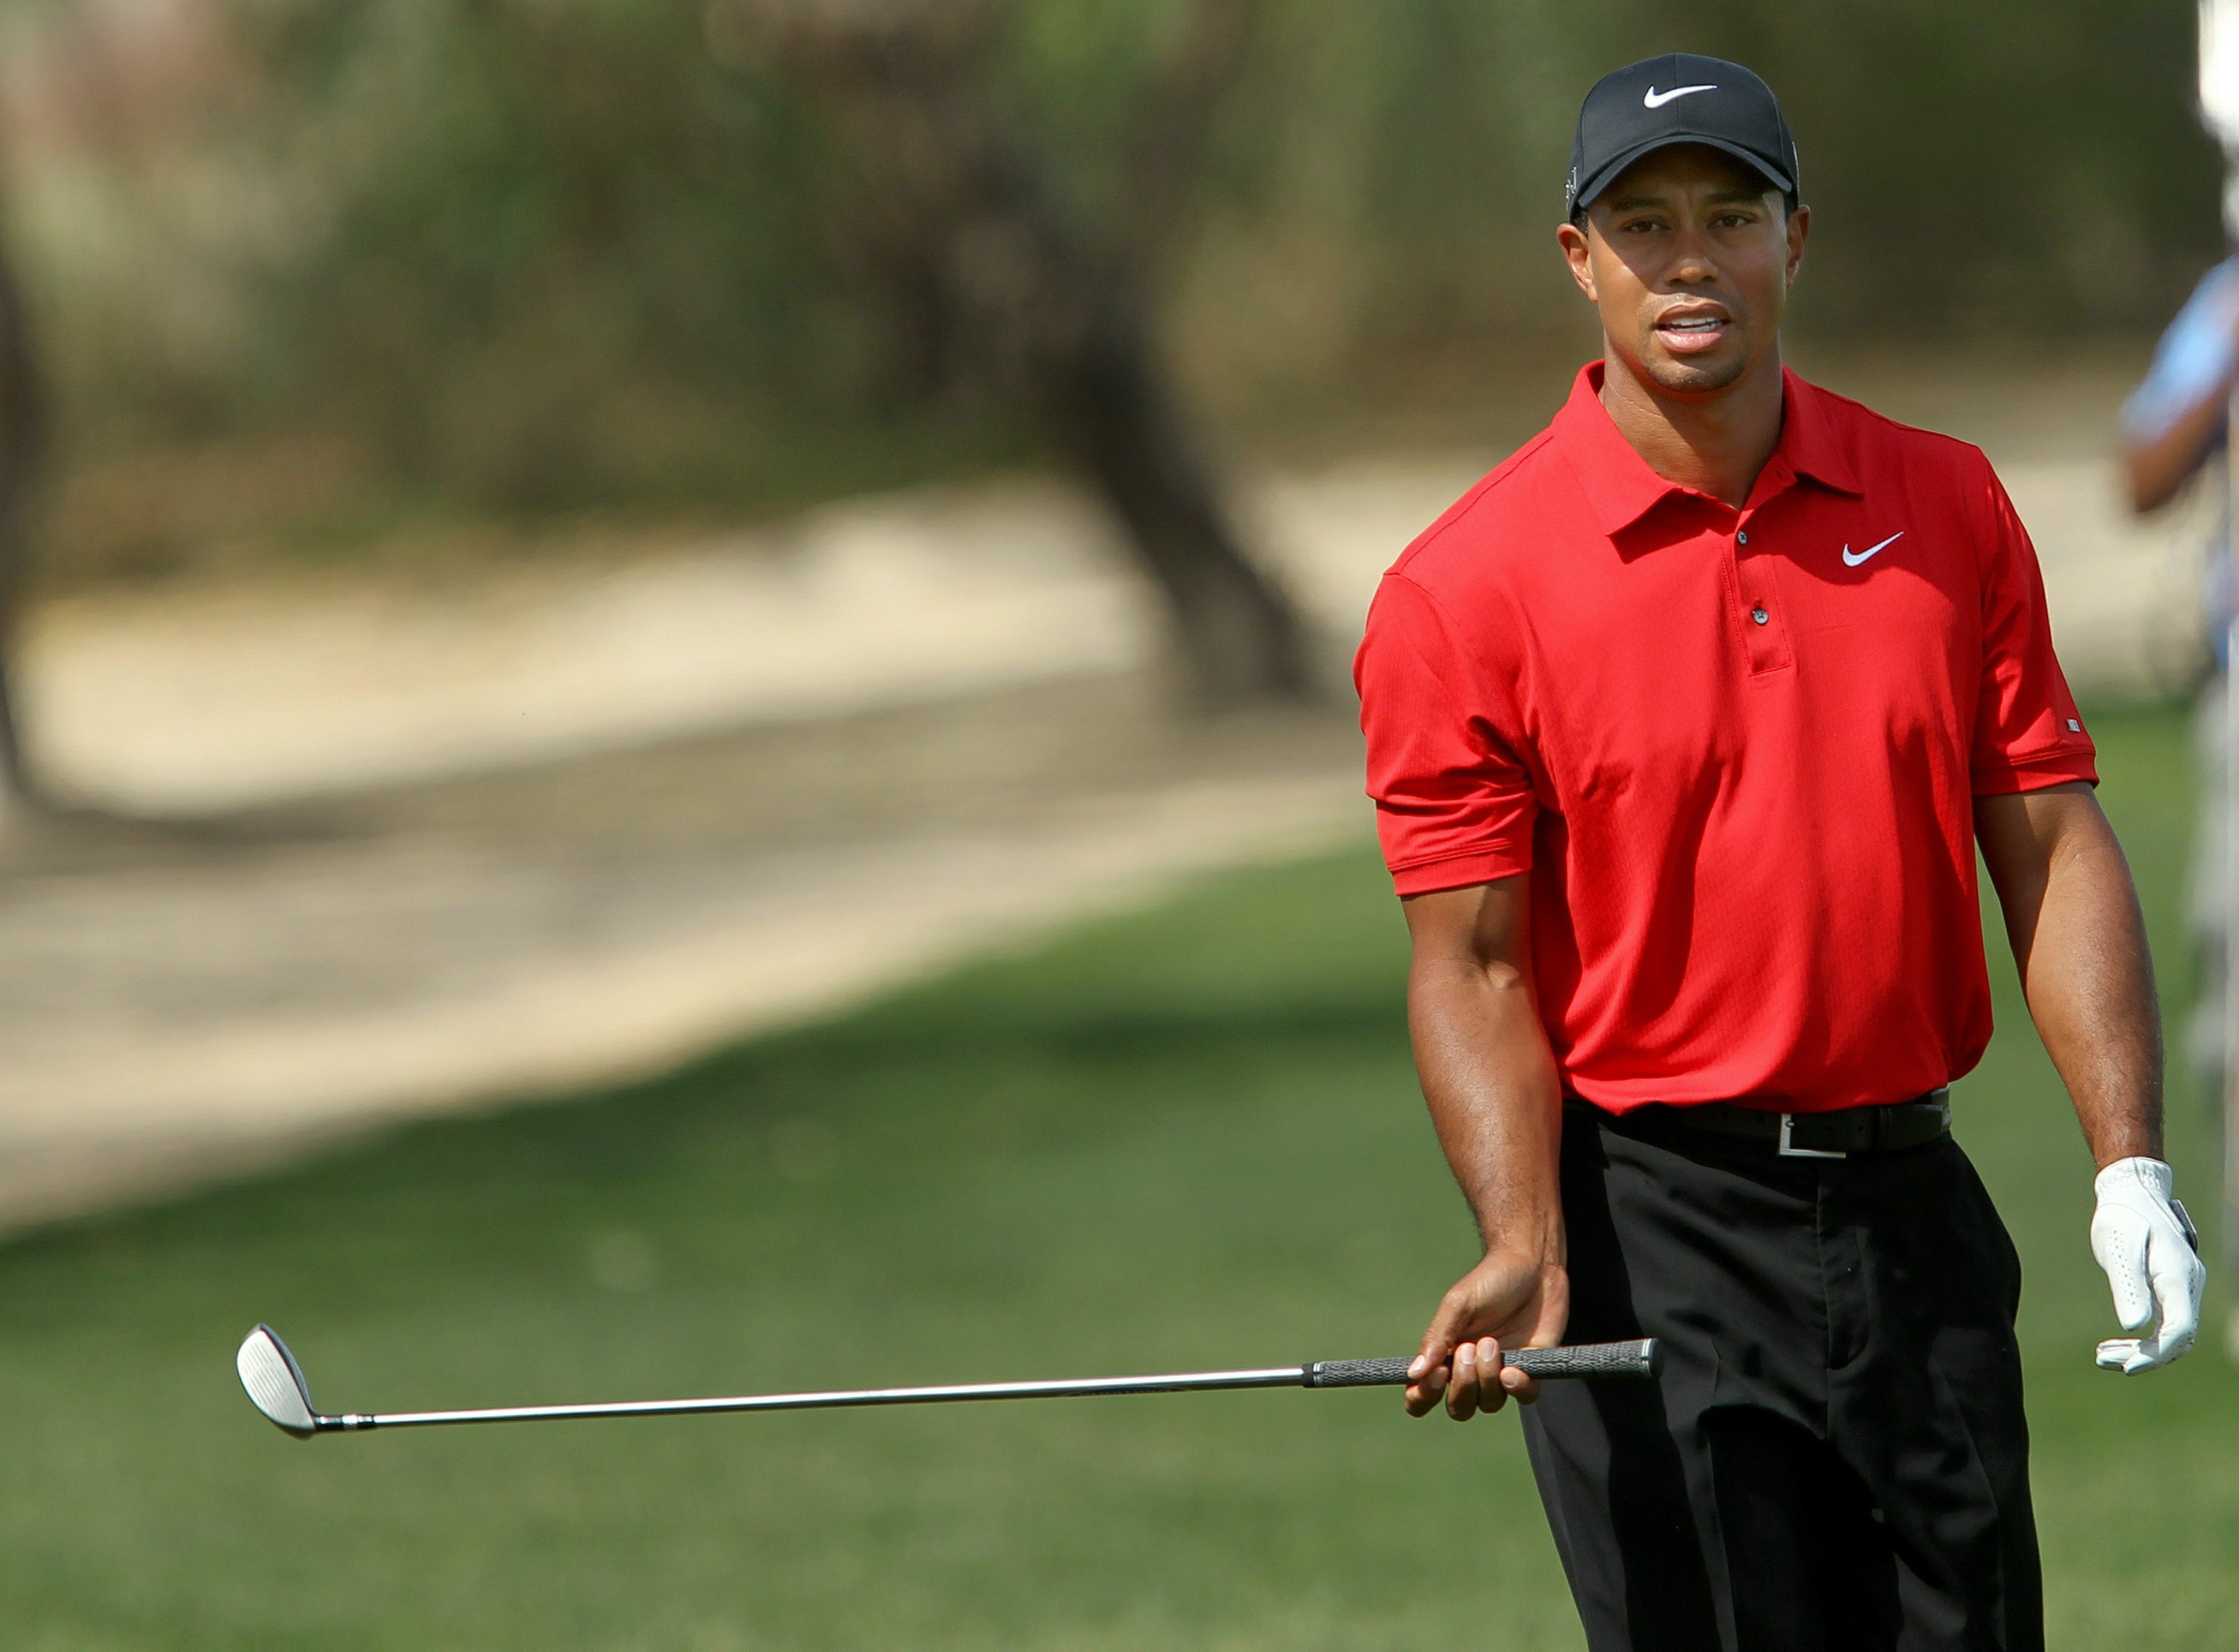 Photographs of tiger woods